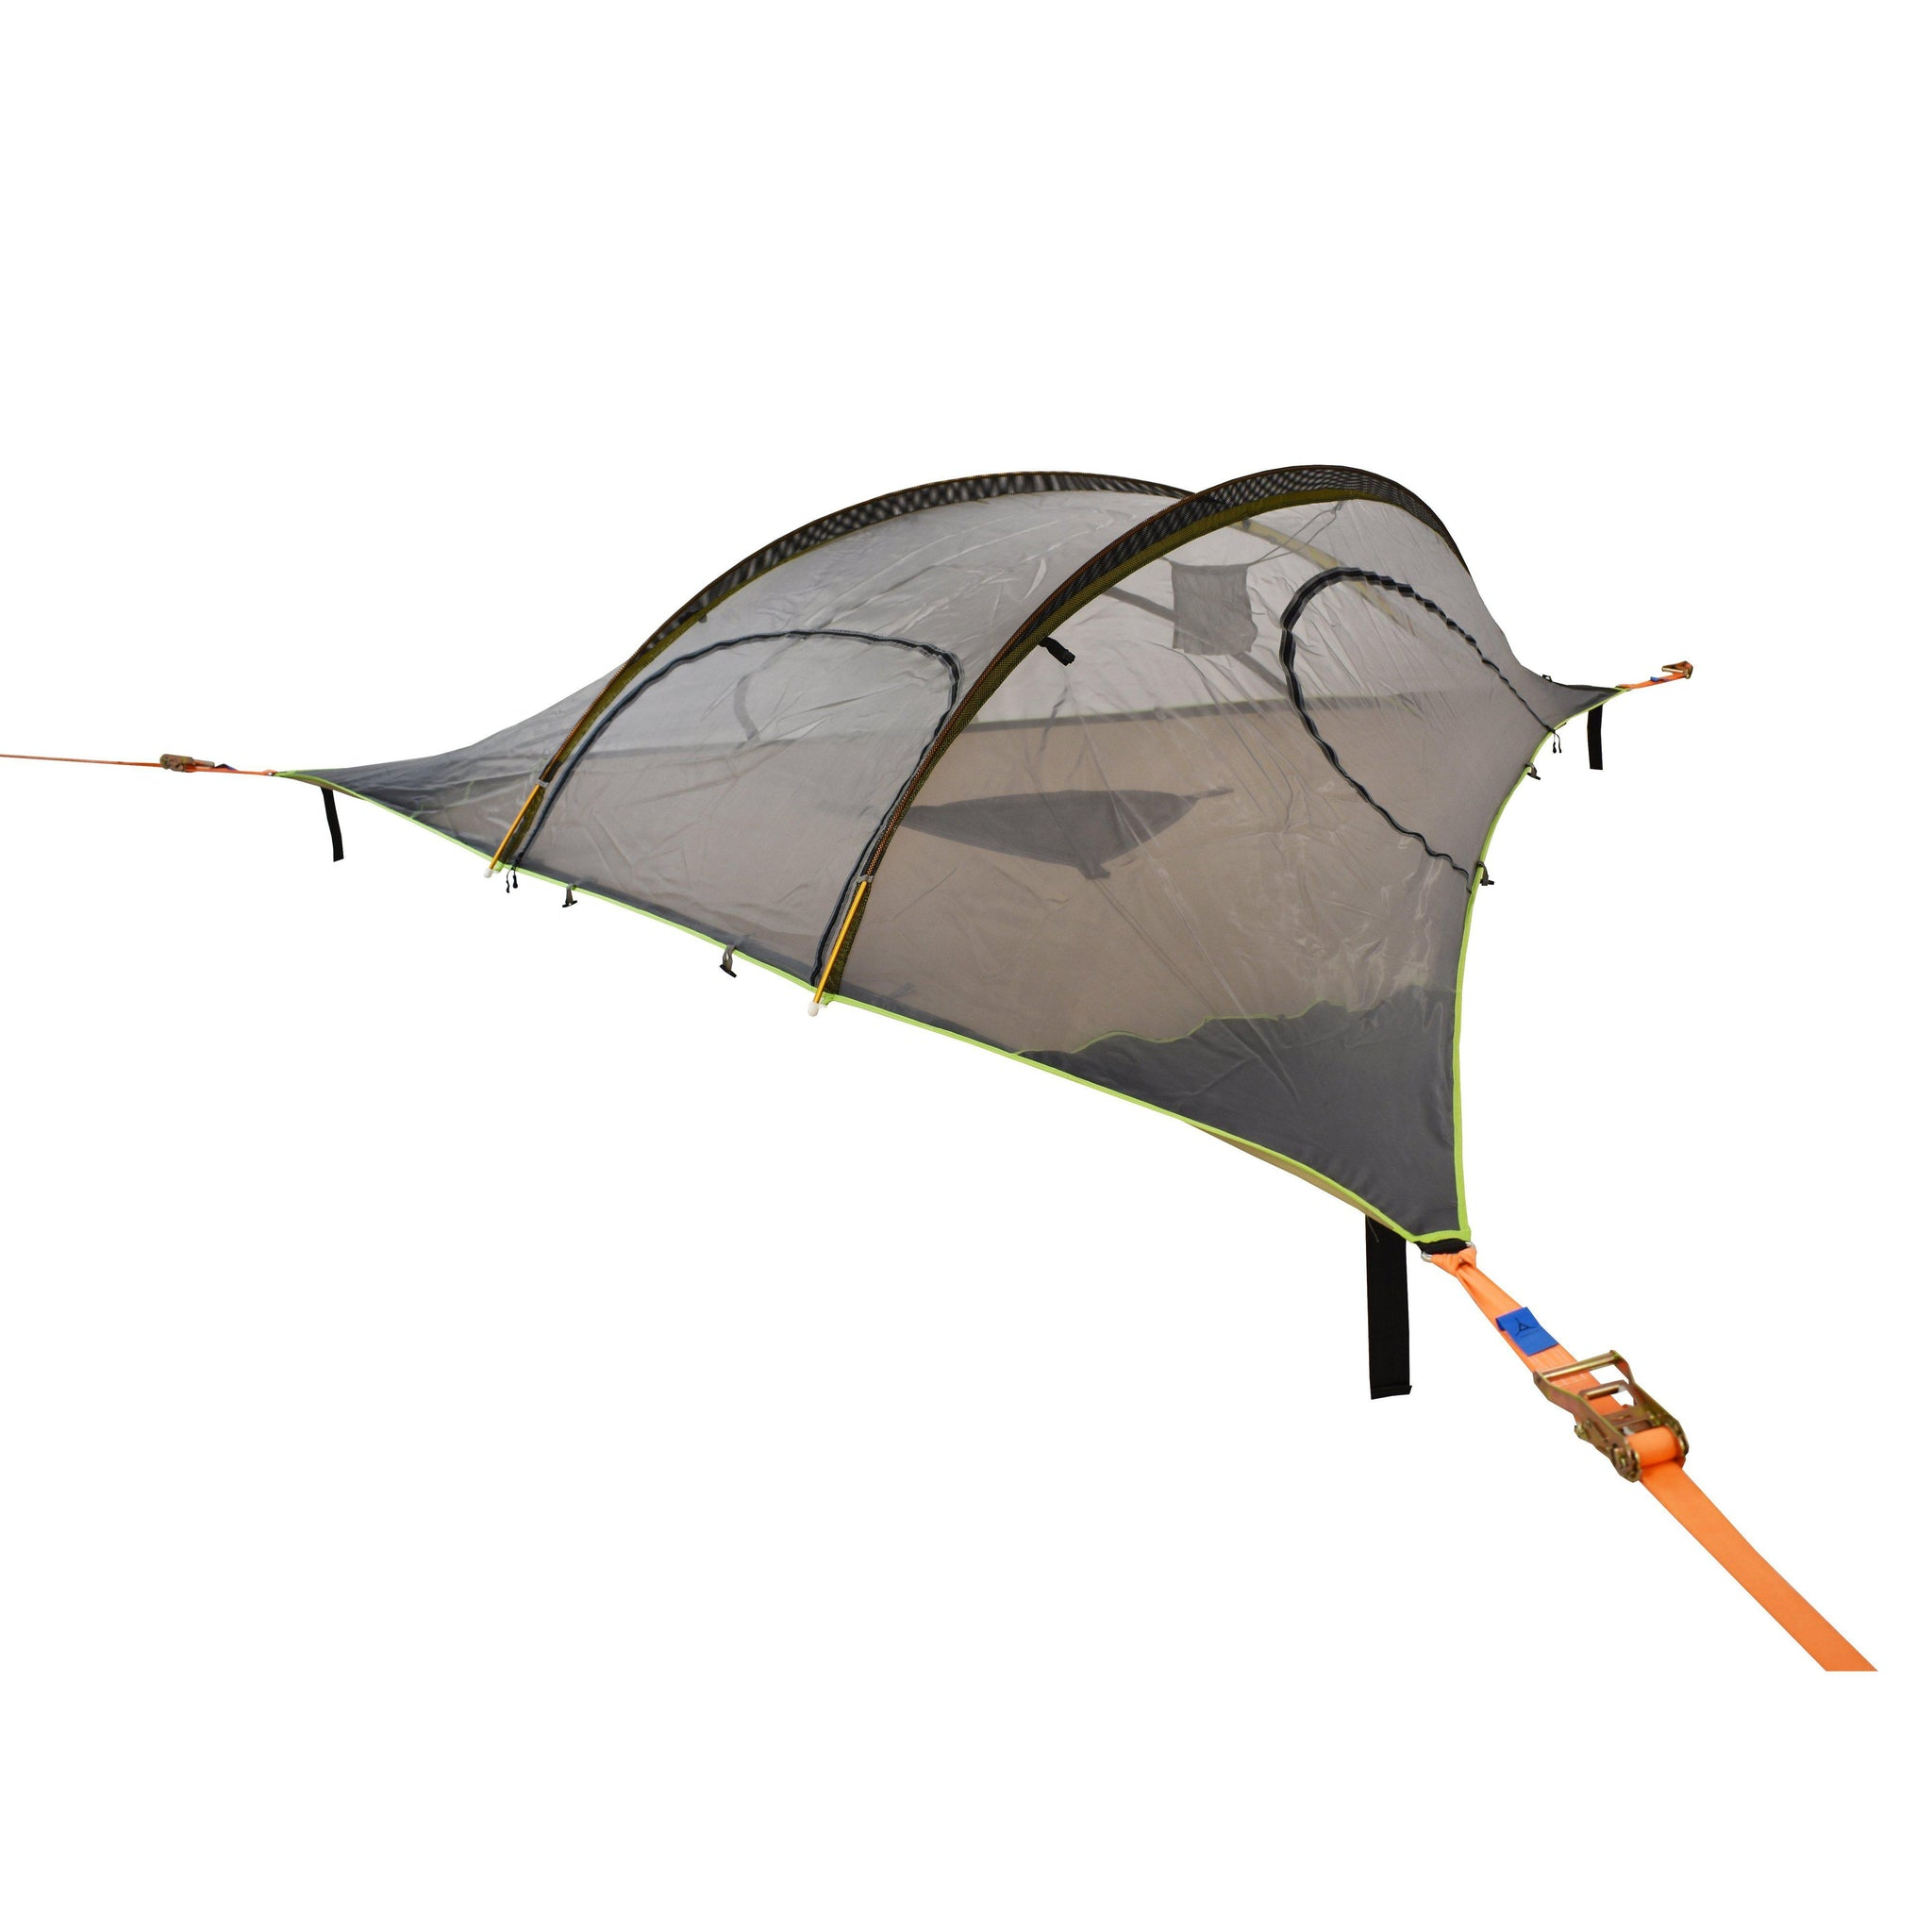 Tentsile Safari Stingray - 3 Person, 4 Season Heavy Duty Tree Tent - Generation 3